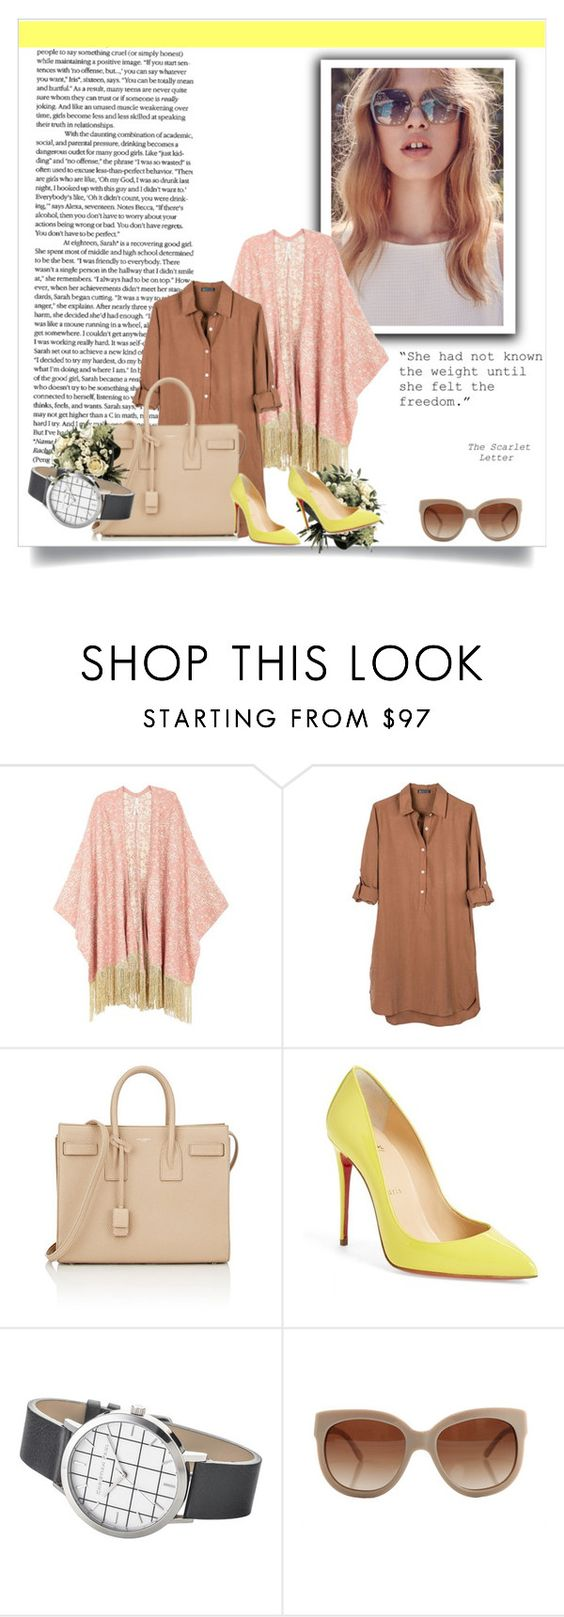 """""""Casual chic!"""" by vassiascissors ❤ liked on Polyvore featuring BB Dakota, Melissa McCarthy Seven7, United by Blue, Yves Saint Laurent, Christian Louboutin, Elwood, STELLA McCARTNEY and plus size clothing"""